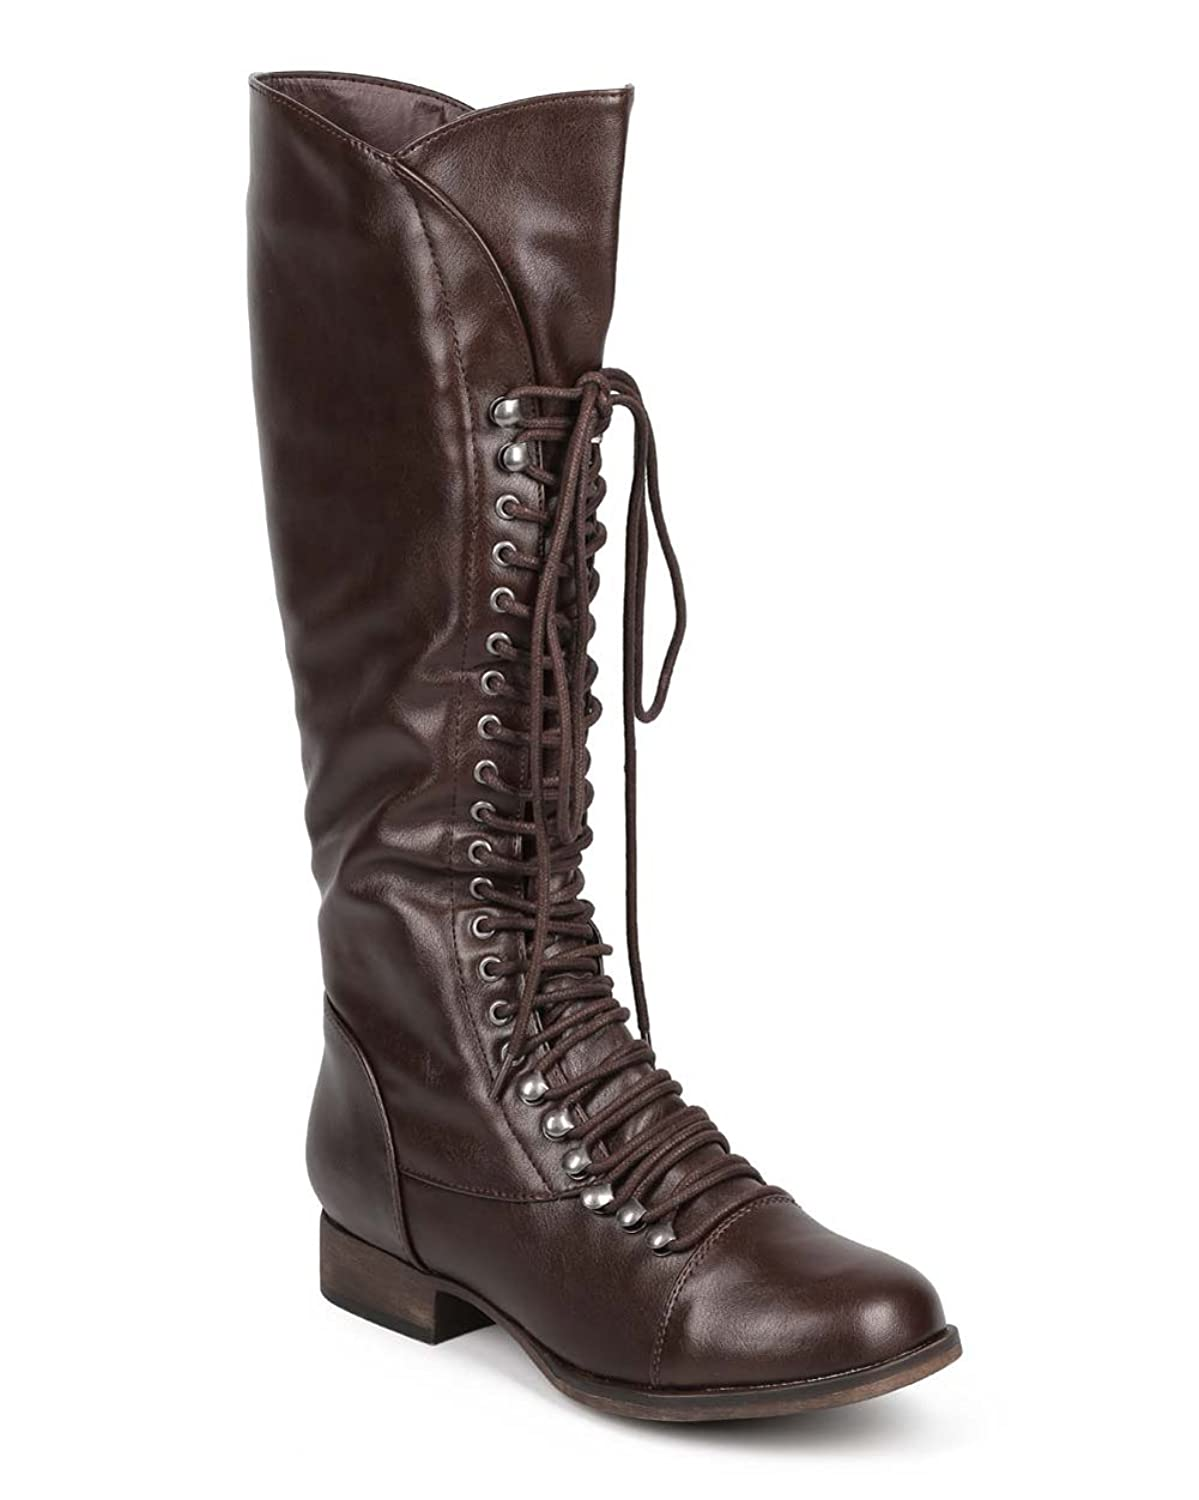 Georgia 75 Women Military Lace Up Knee High Combat Boots